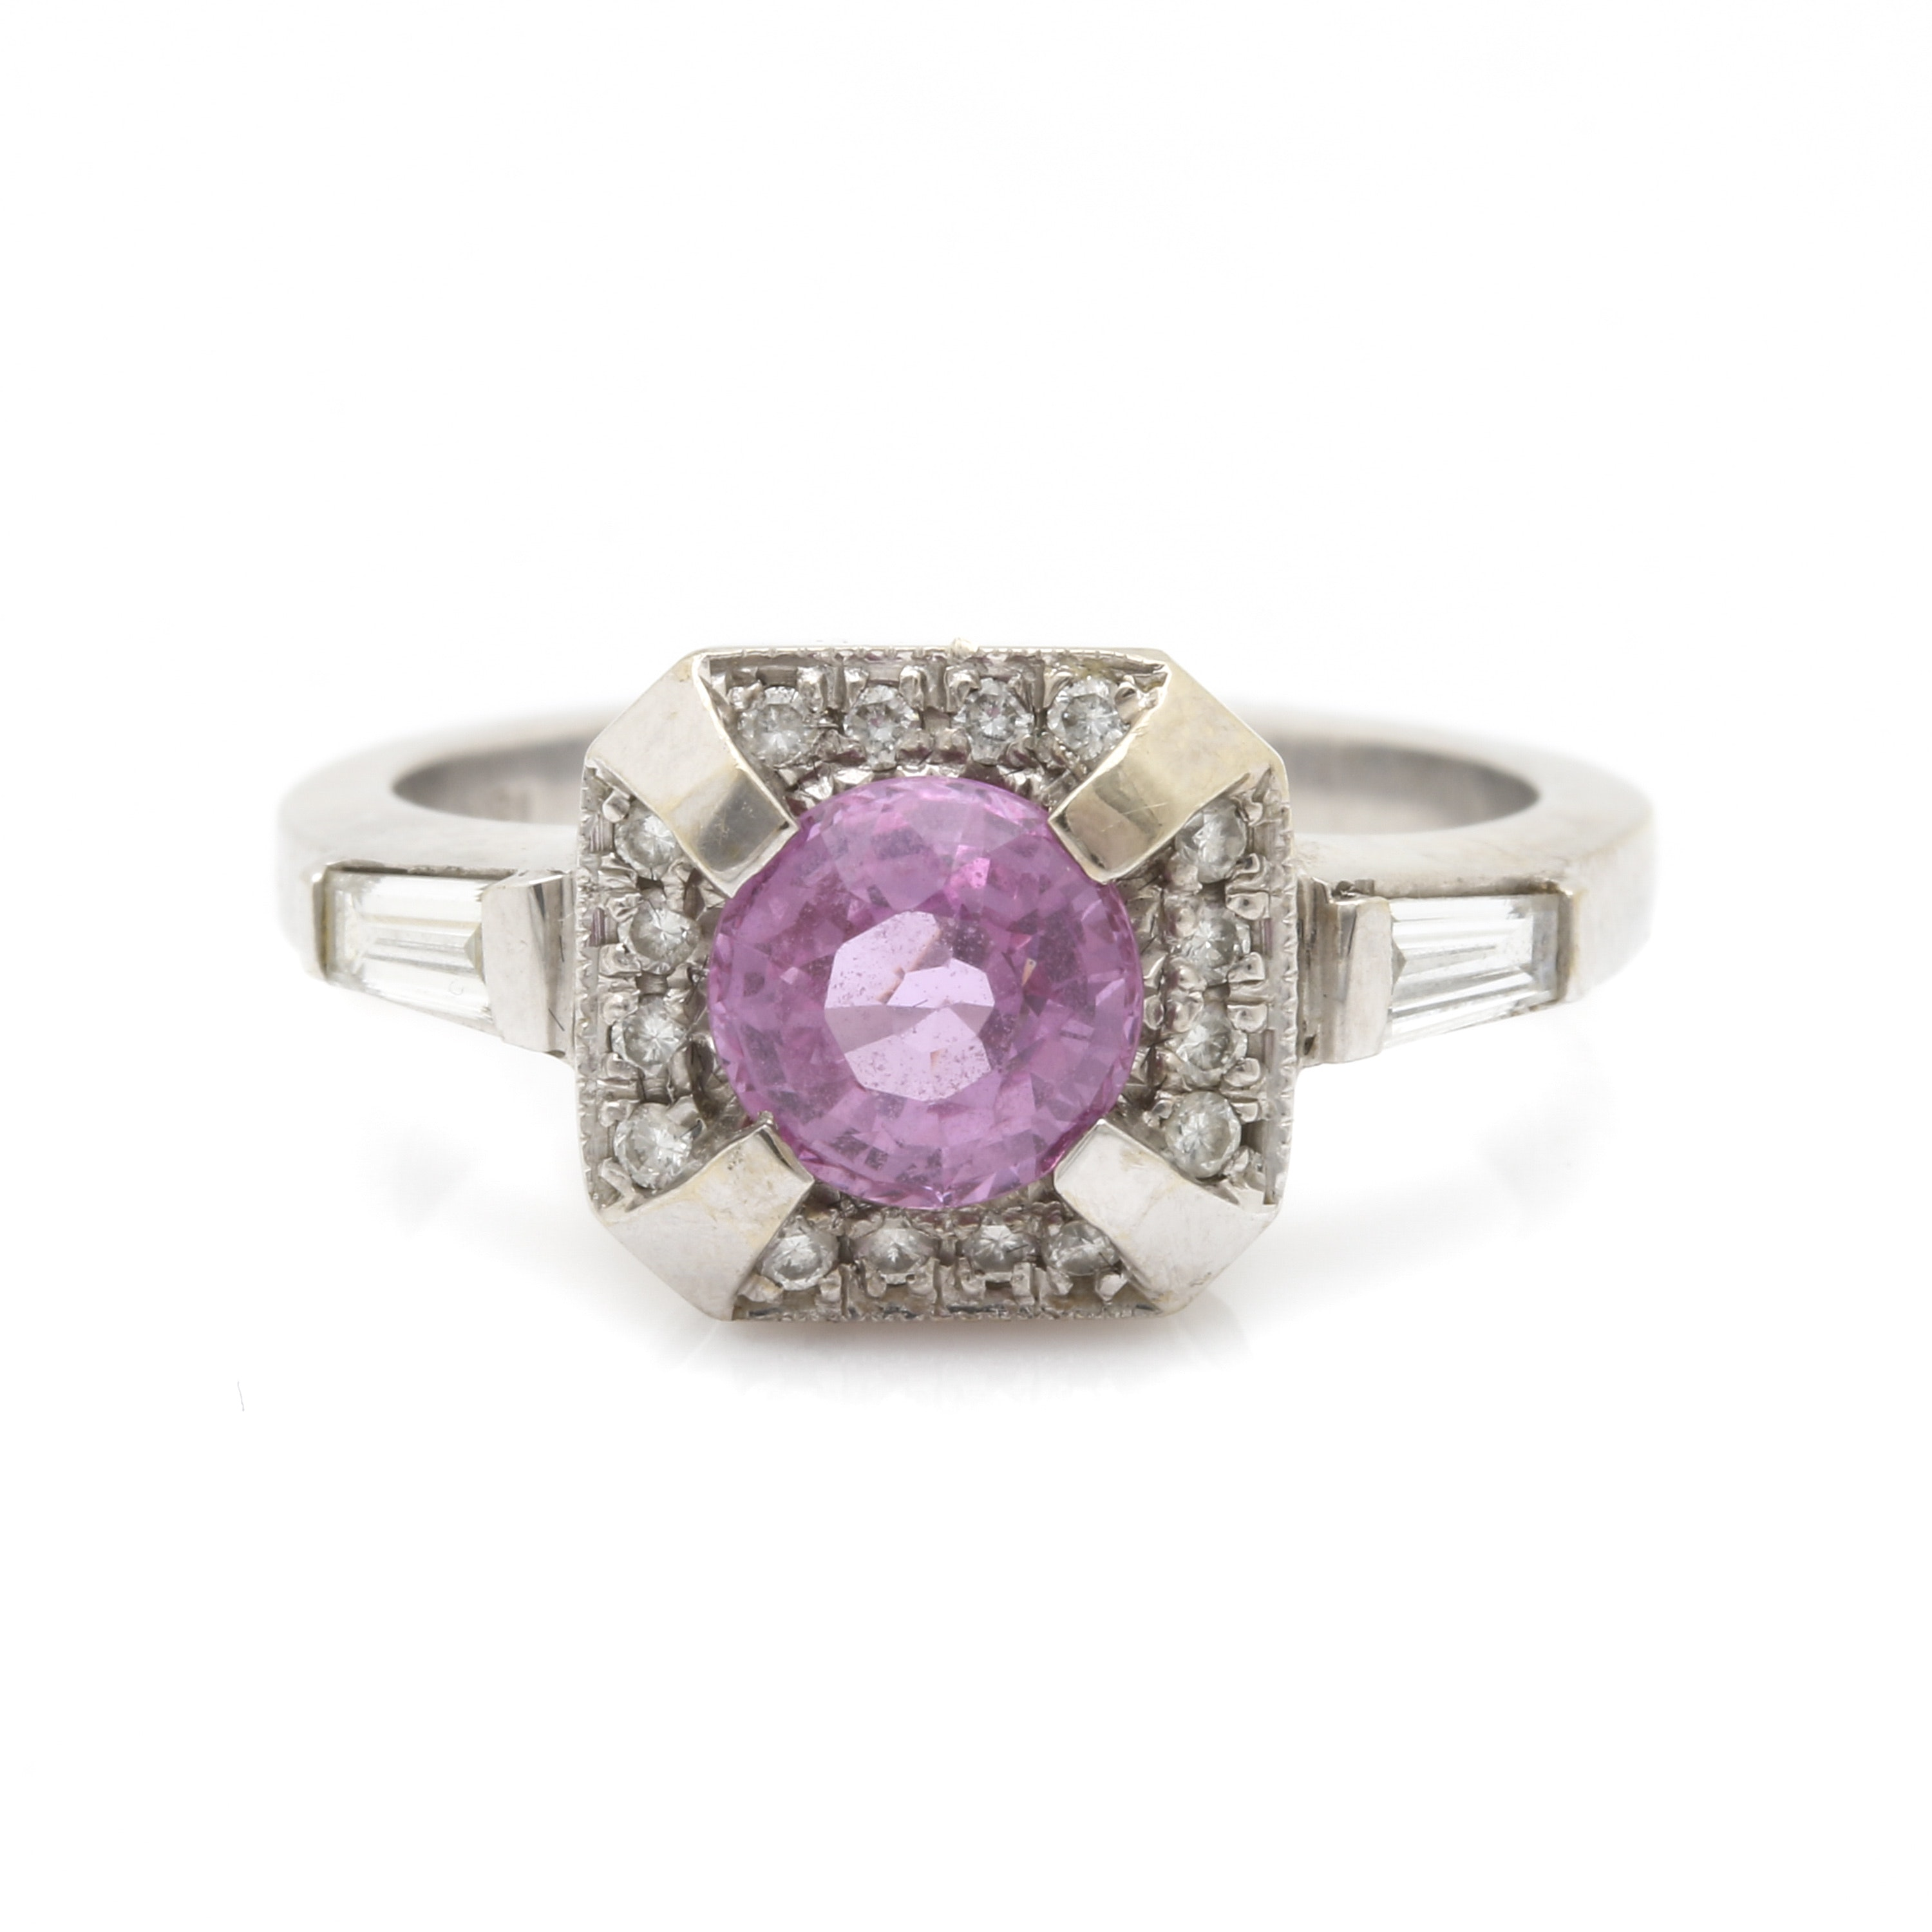 Art Deco 18K White Gold Untreated Pink Sapphire and Diamond Ring